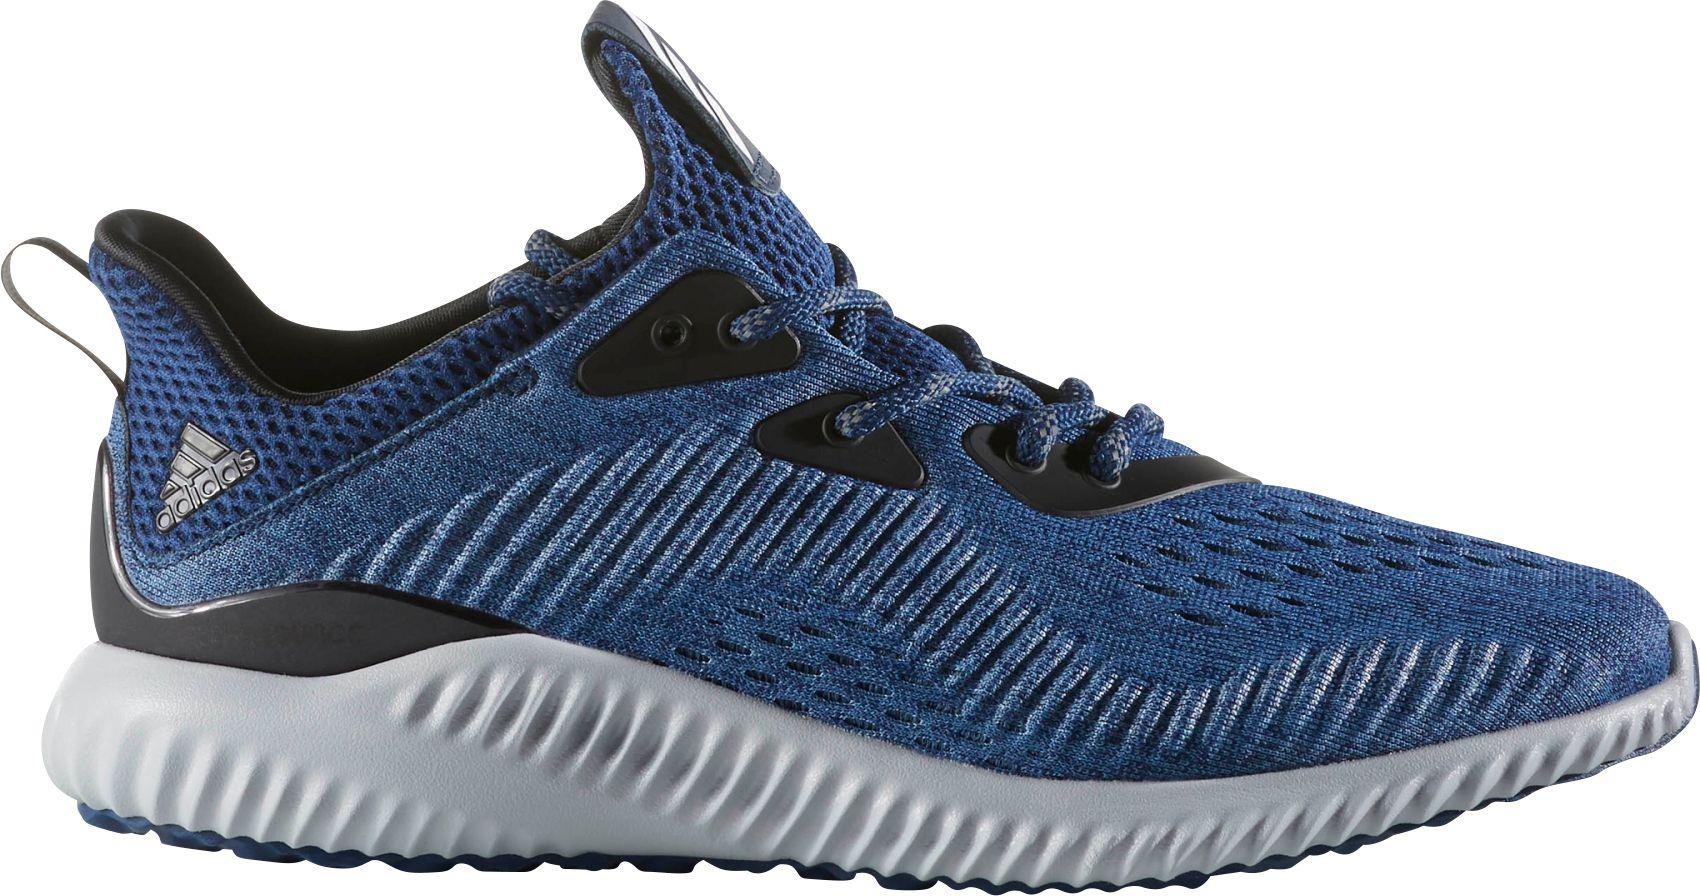 7f51b401f ... ireland lyst adidas alphabounce em running shoes in blue for men ede26  f94cc